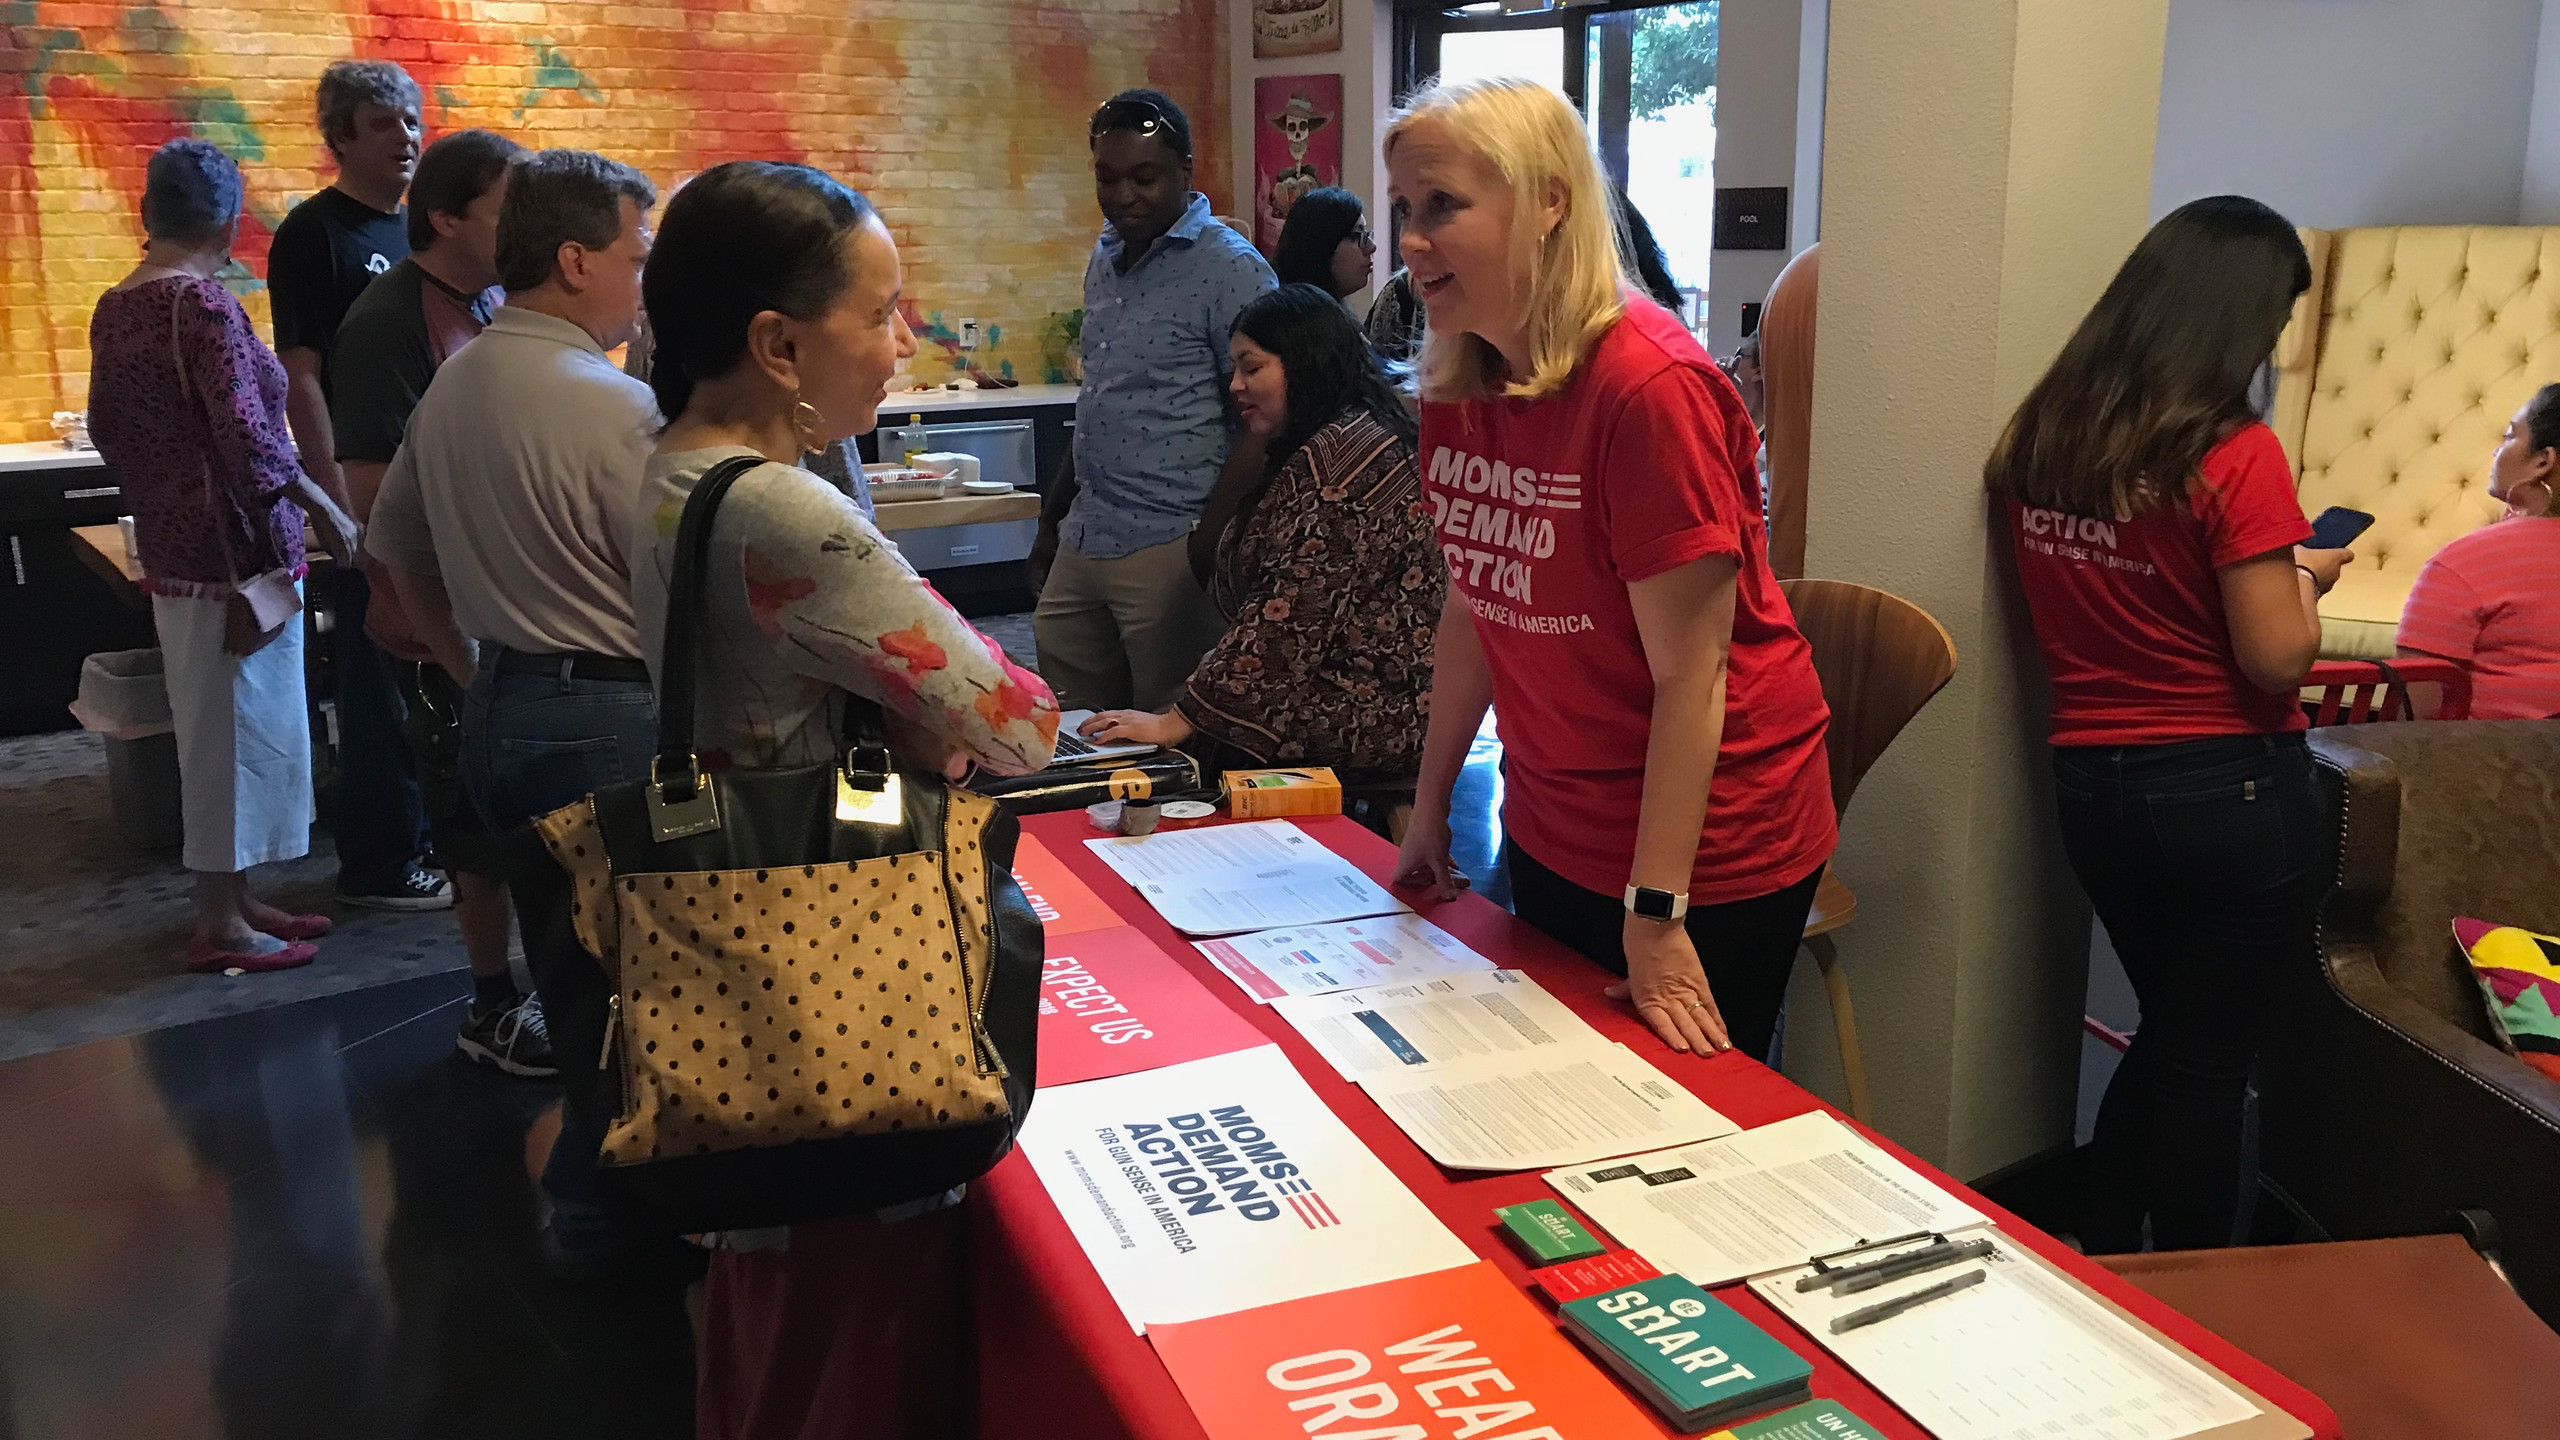 Moms Demand Action Info table